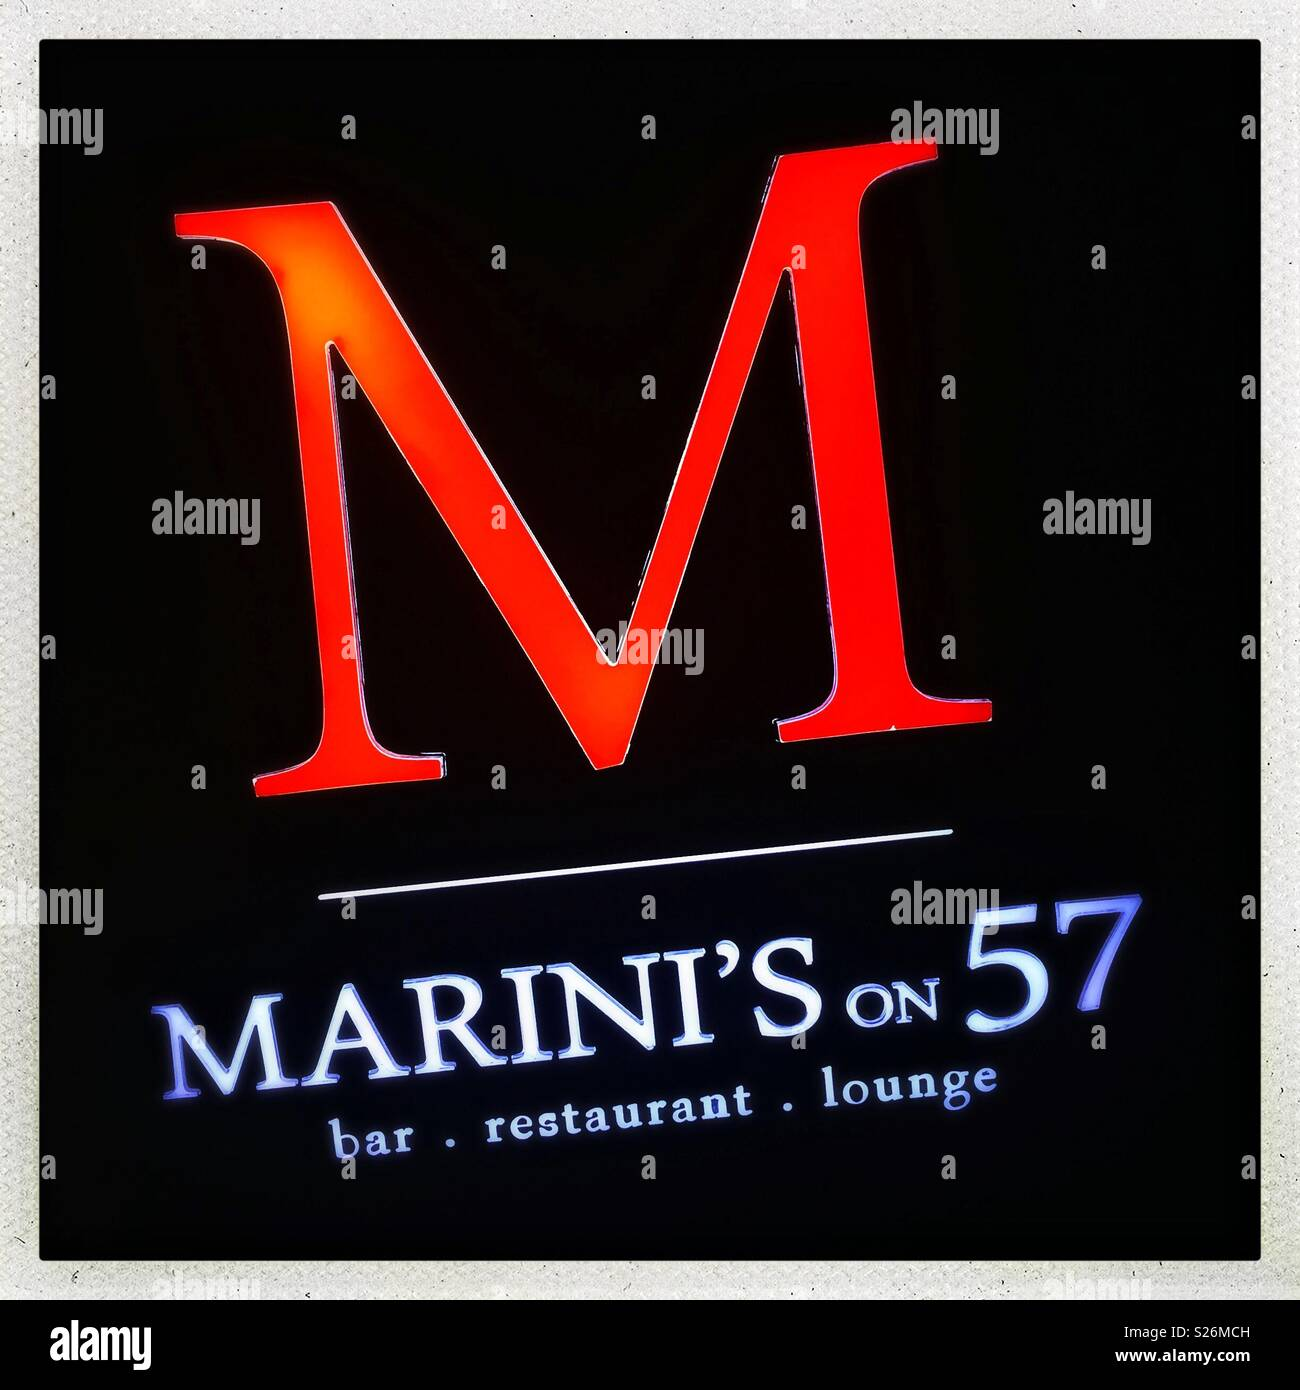 Illuminated sign for Marini's on 57, Malaysia's highest restaurant and bar, located on the rooftop of Petronas Tower 3, Kuala Lumpur, Malaysia - Stock Image